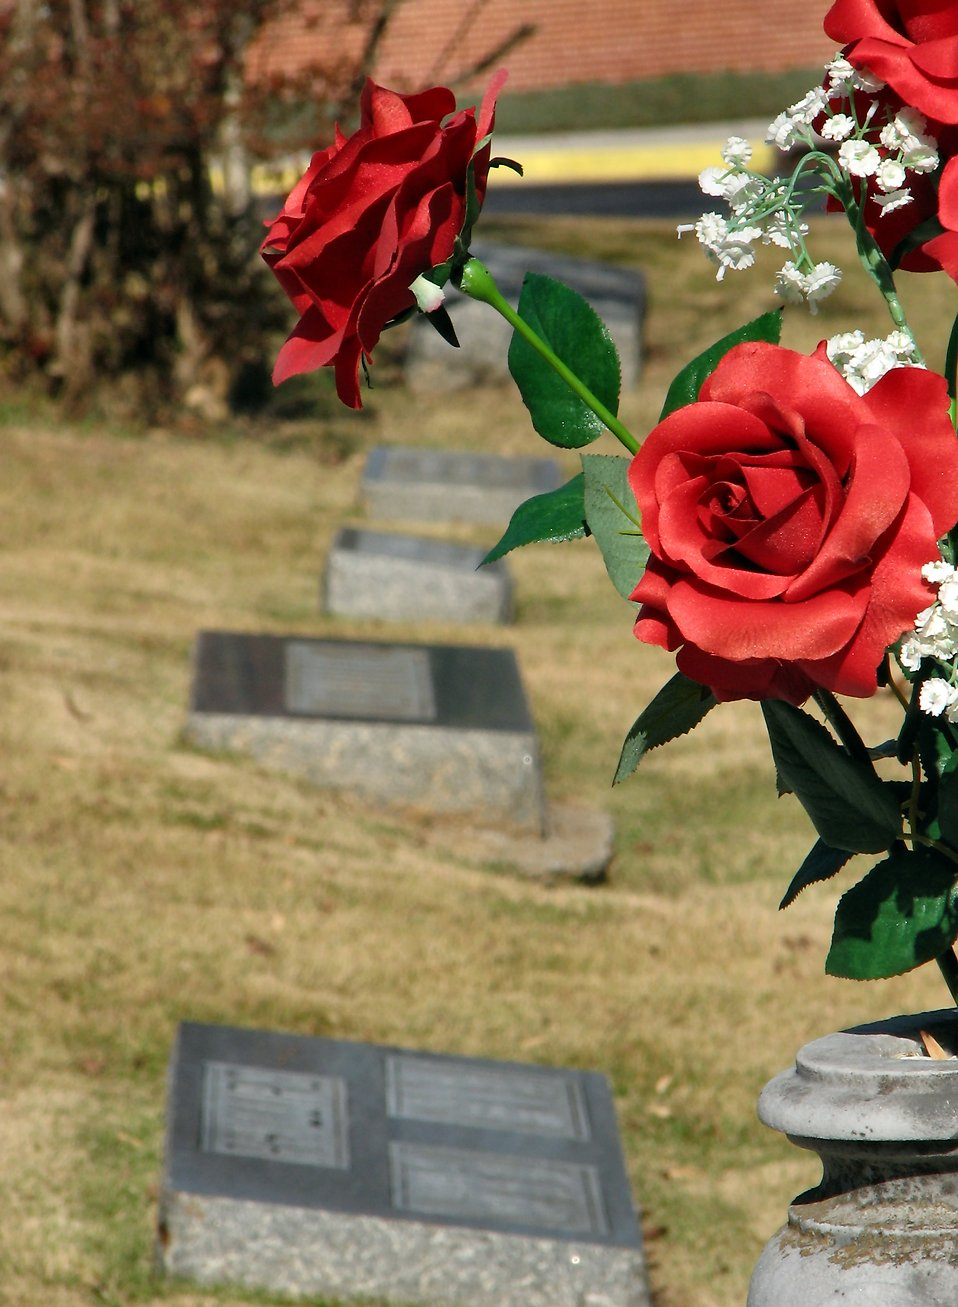 Closeup of roses in a cemetary : Free Stock Photo